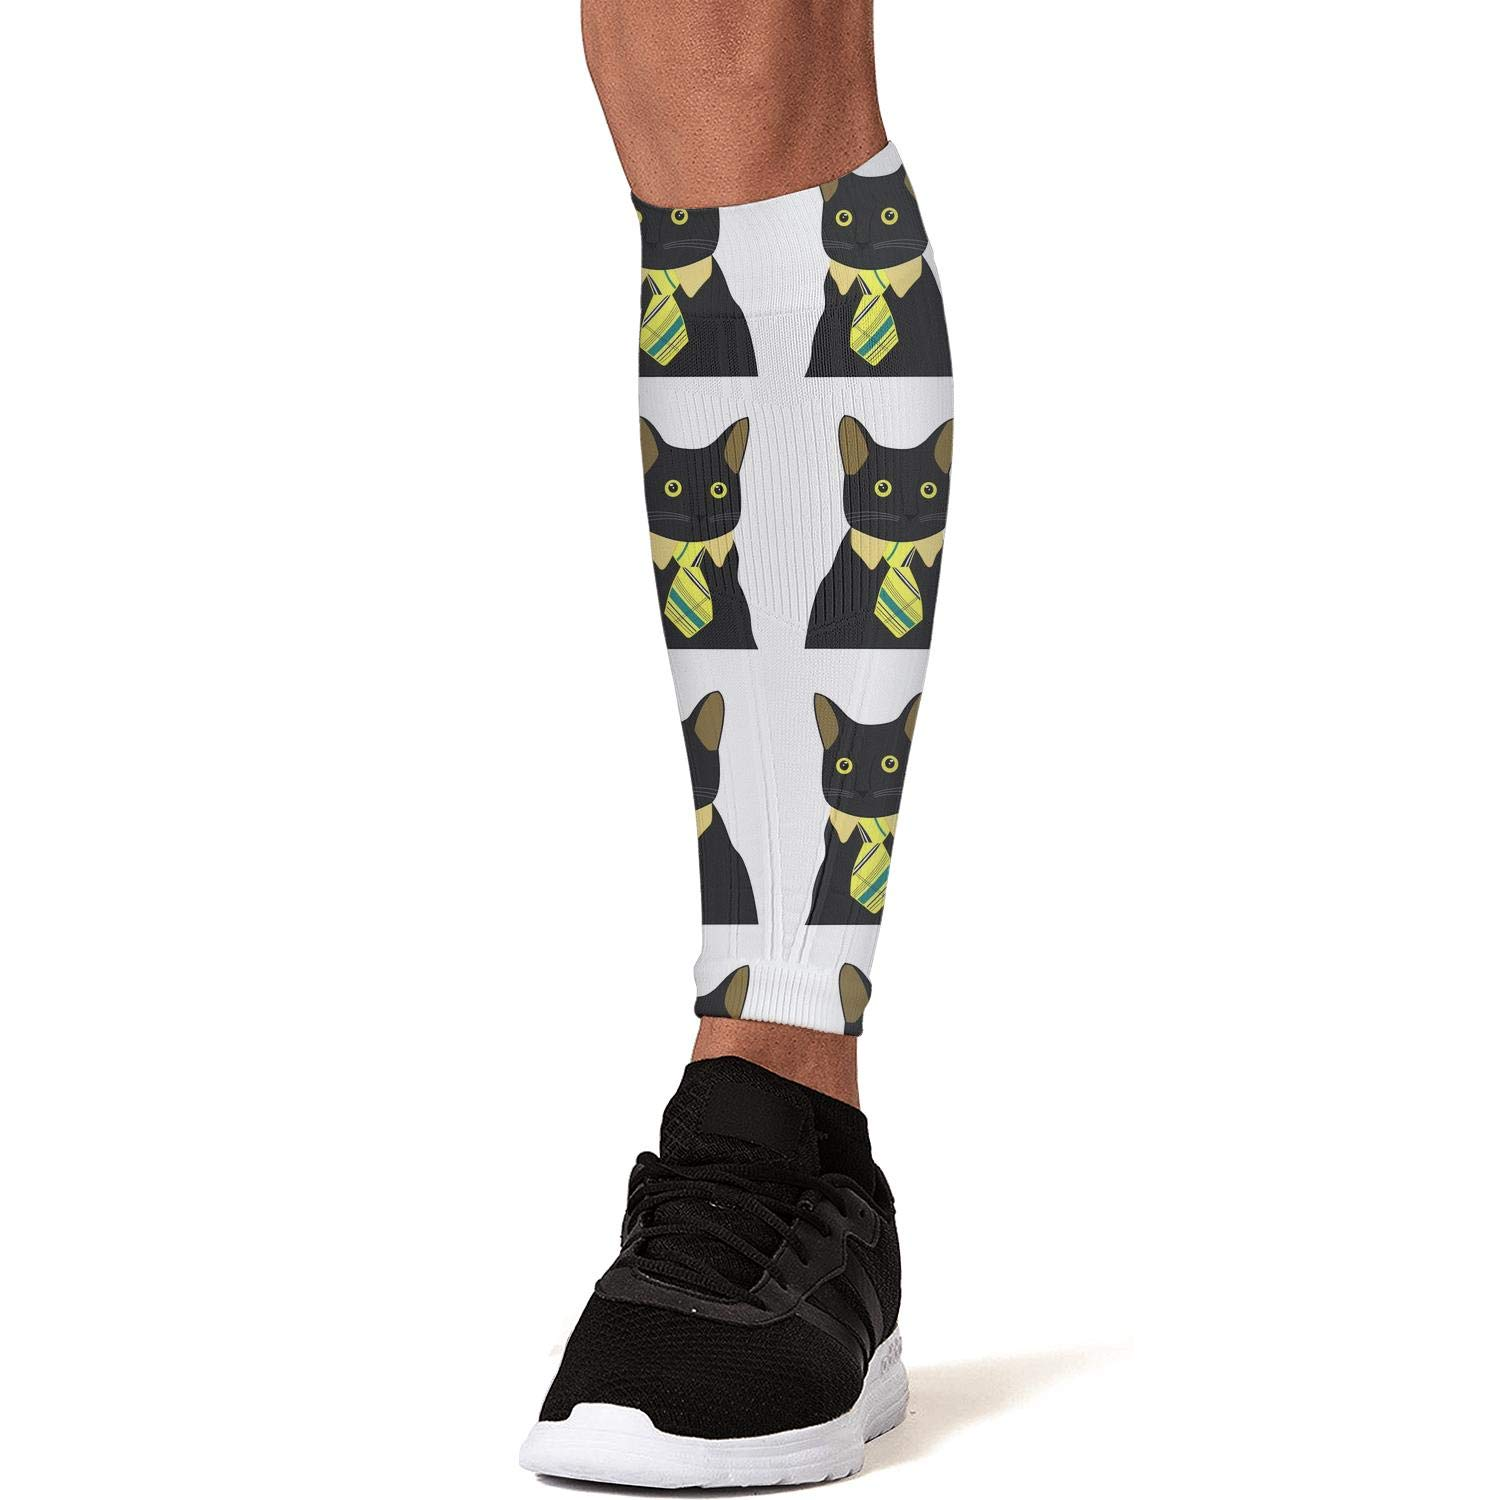 Smilelolly Black Cats with Ties Calf Compression Sleeves Helps Faster Recovery Leg Sleeves for Men Women